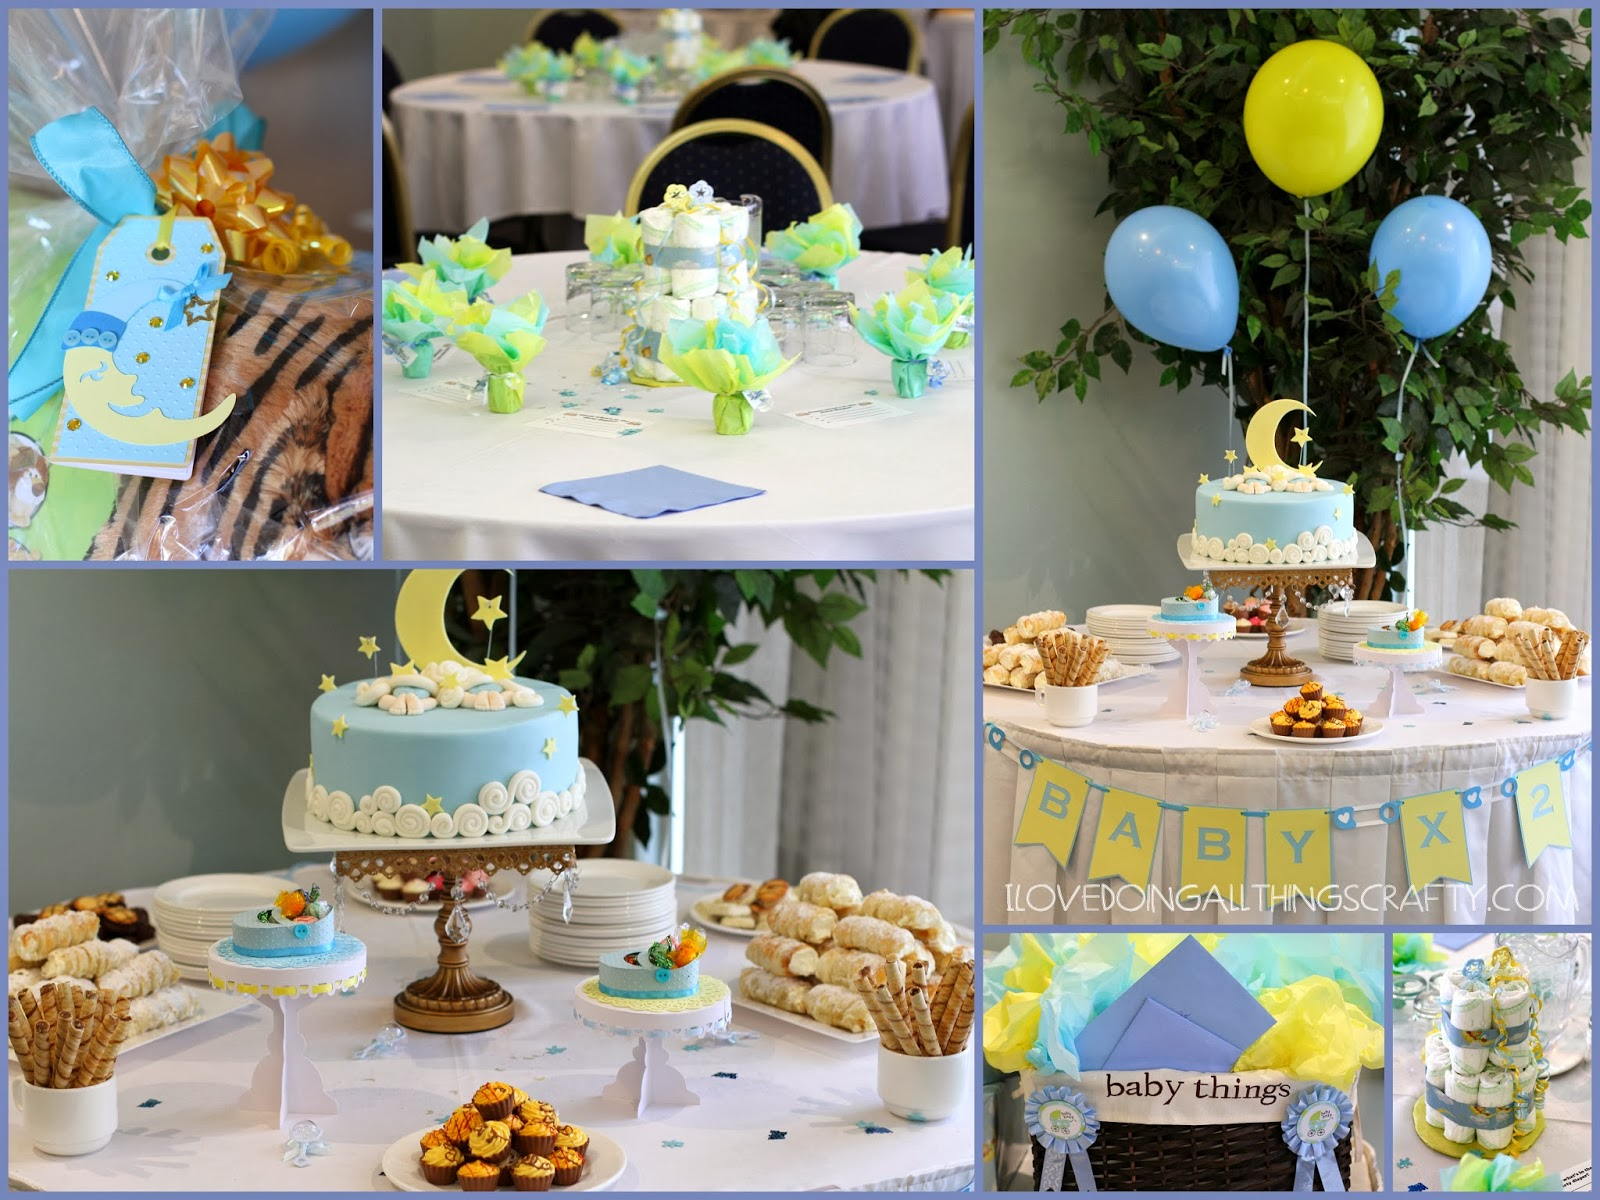 I love doing all things crafty moon star clouds twin for Baby shower decoration ideas for twin boys